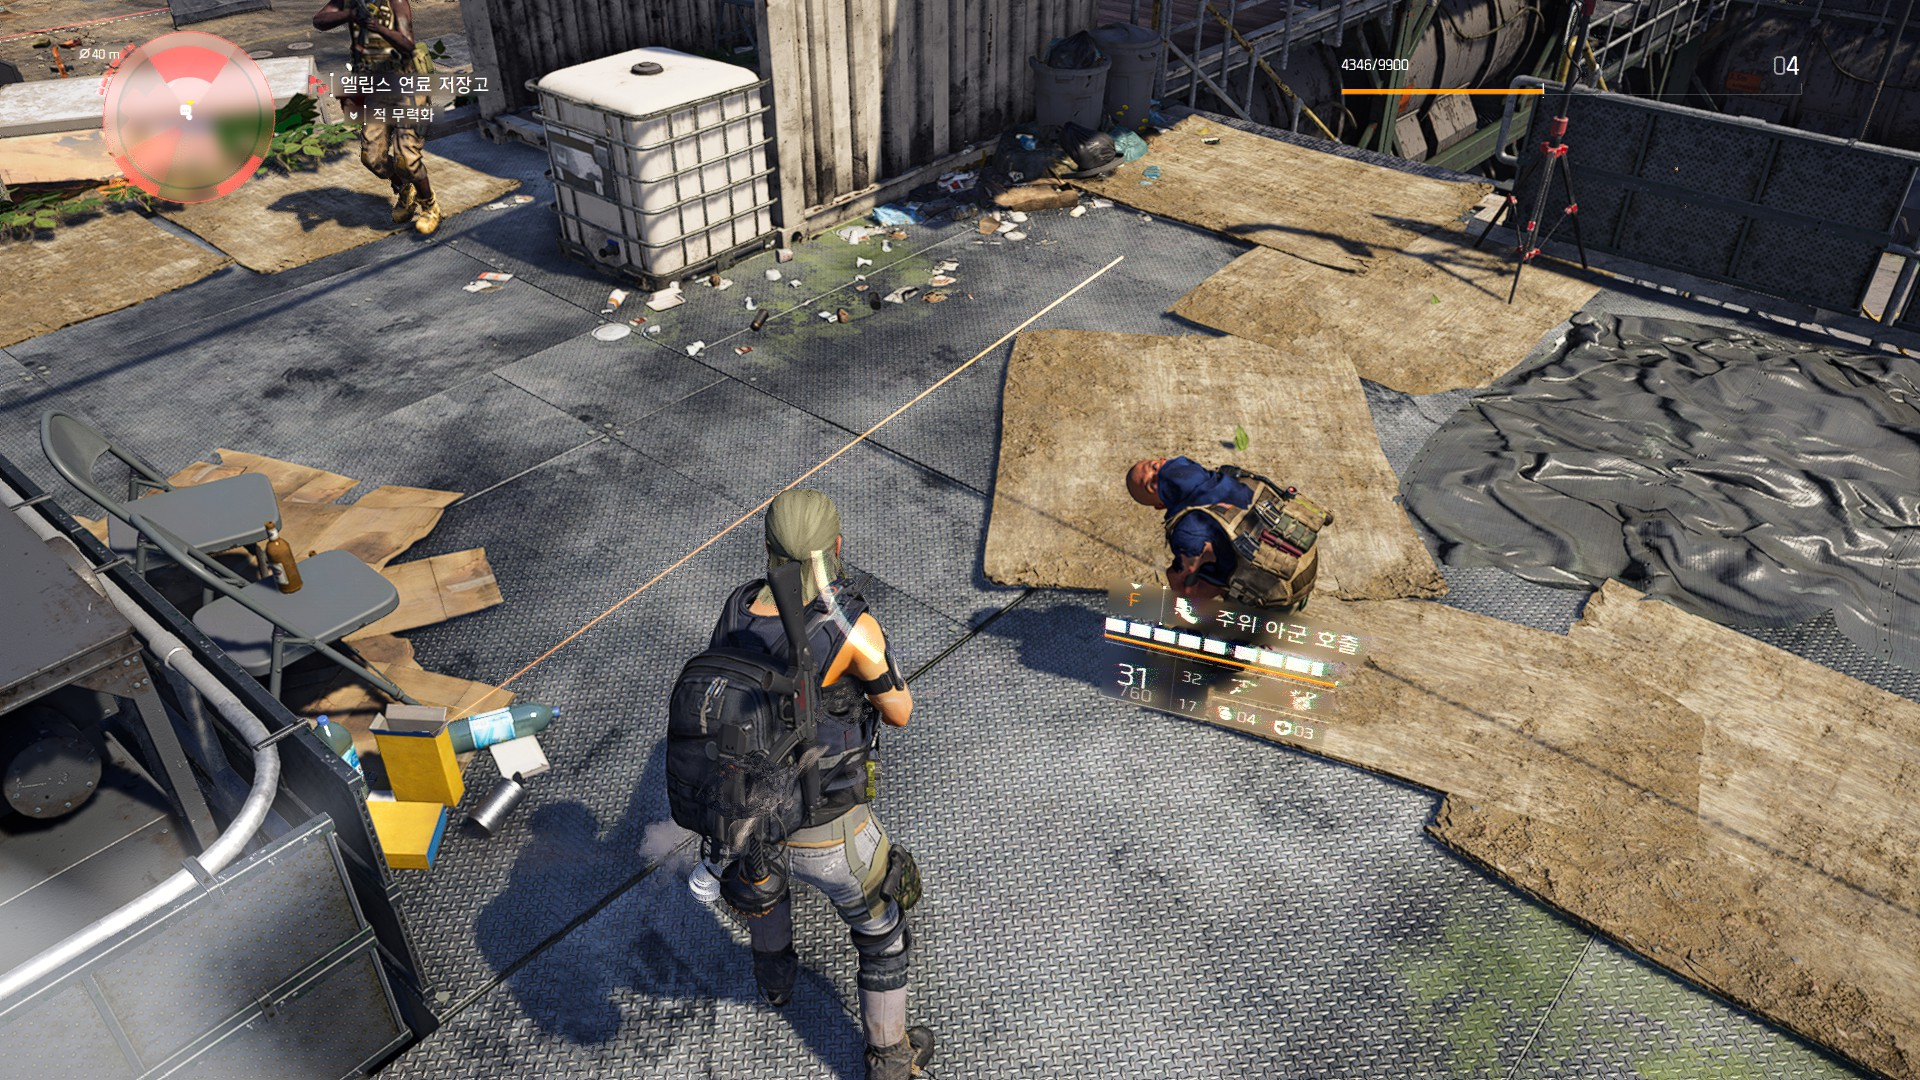 Tom Clancy's The Division® 22019-3-12-1-21-33.jpg